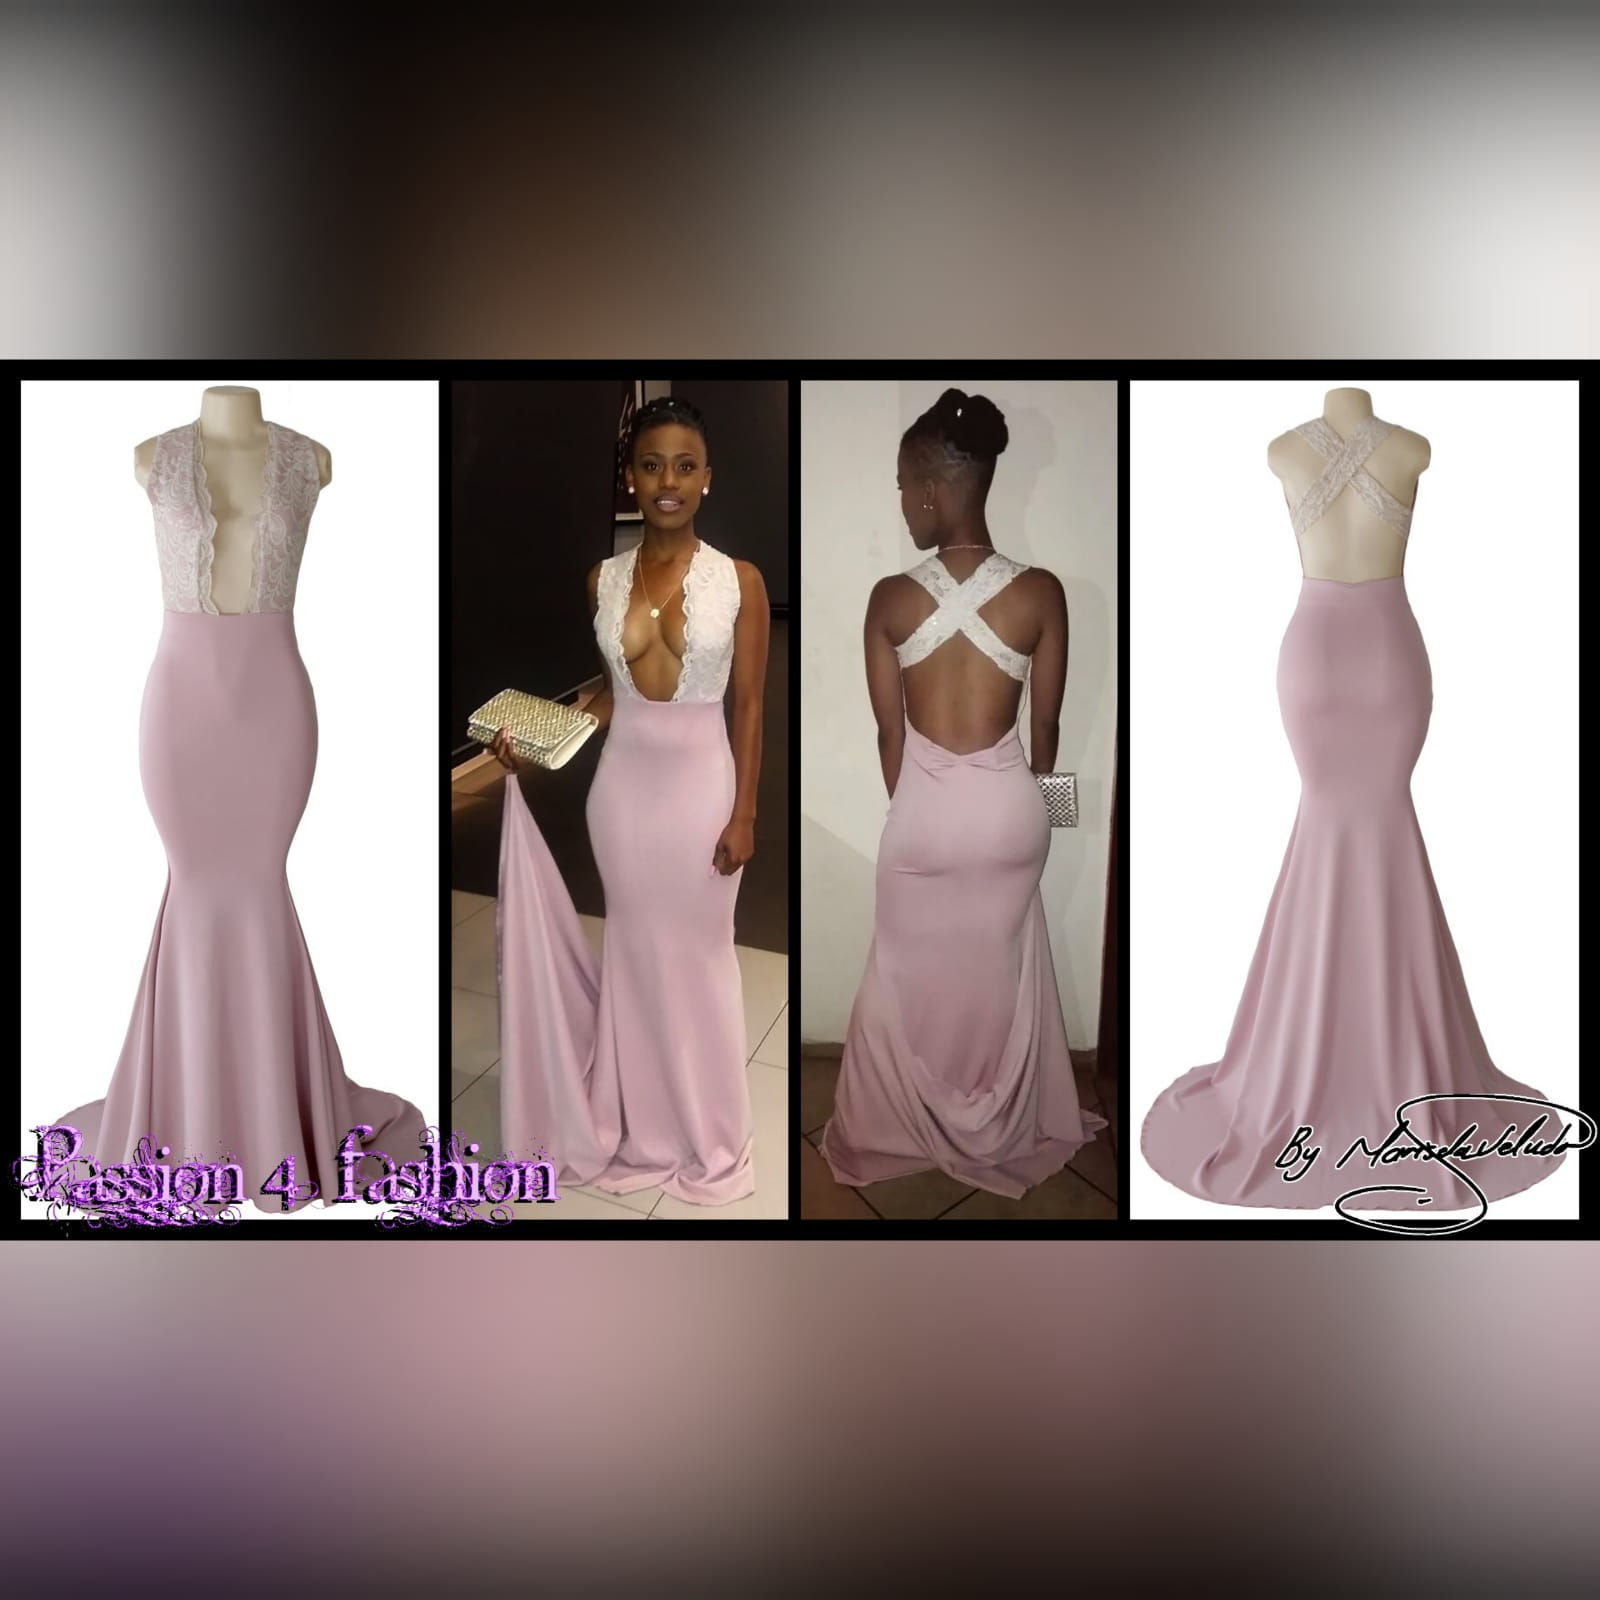 Dirty pink and cream soft mermaid prom dress 5 dirty pink and cream plunging neckline soft mermaid matric farewell dress with an open back and crossed lace back straps with a train.